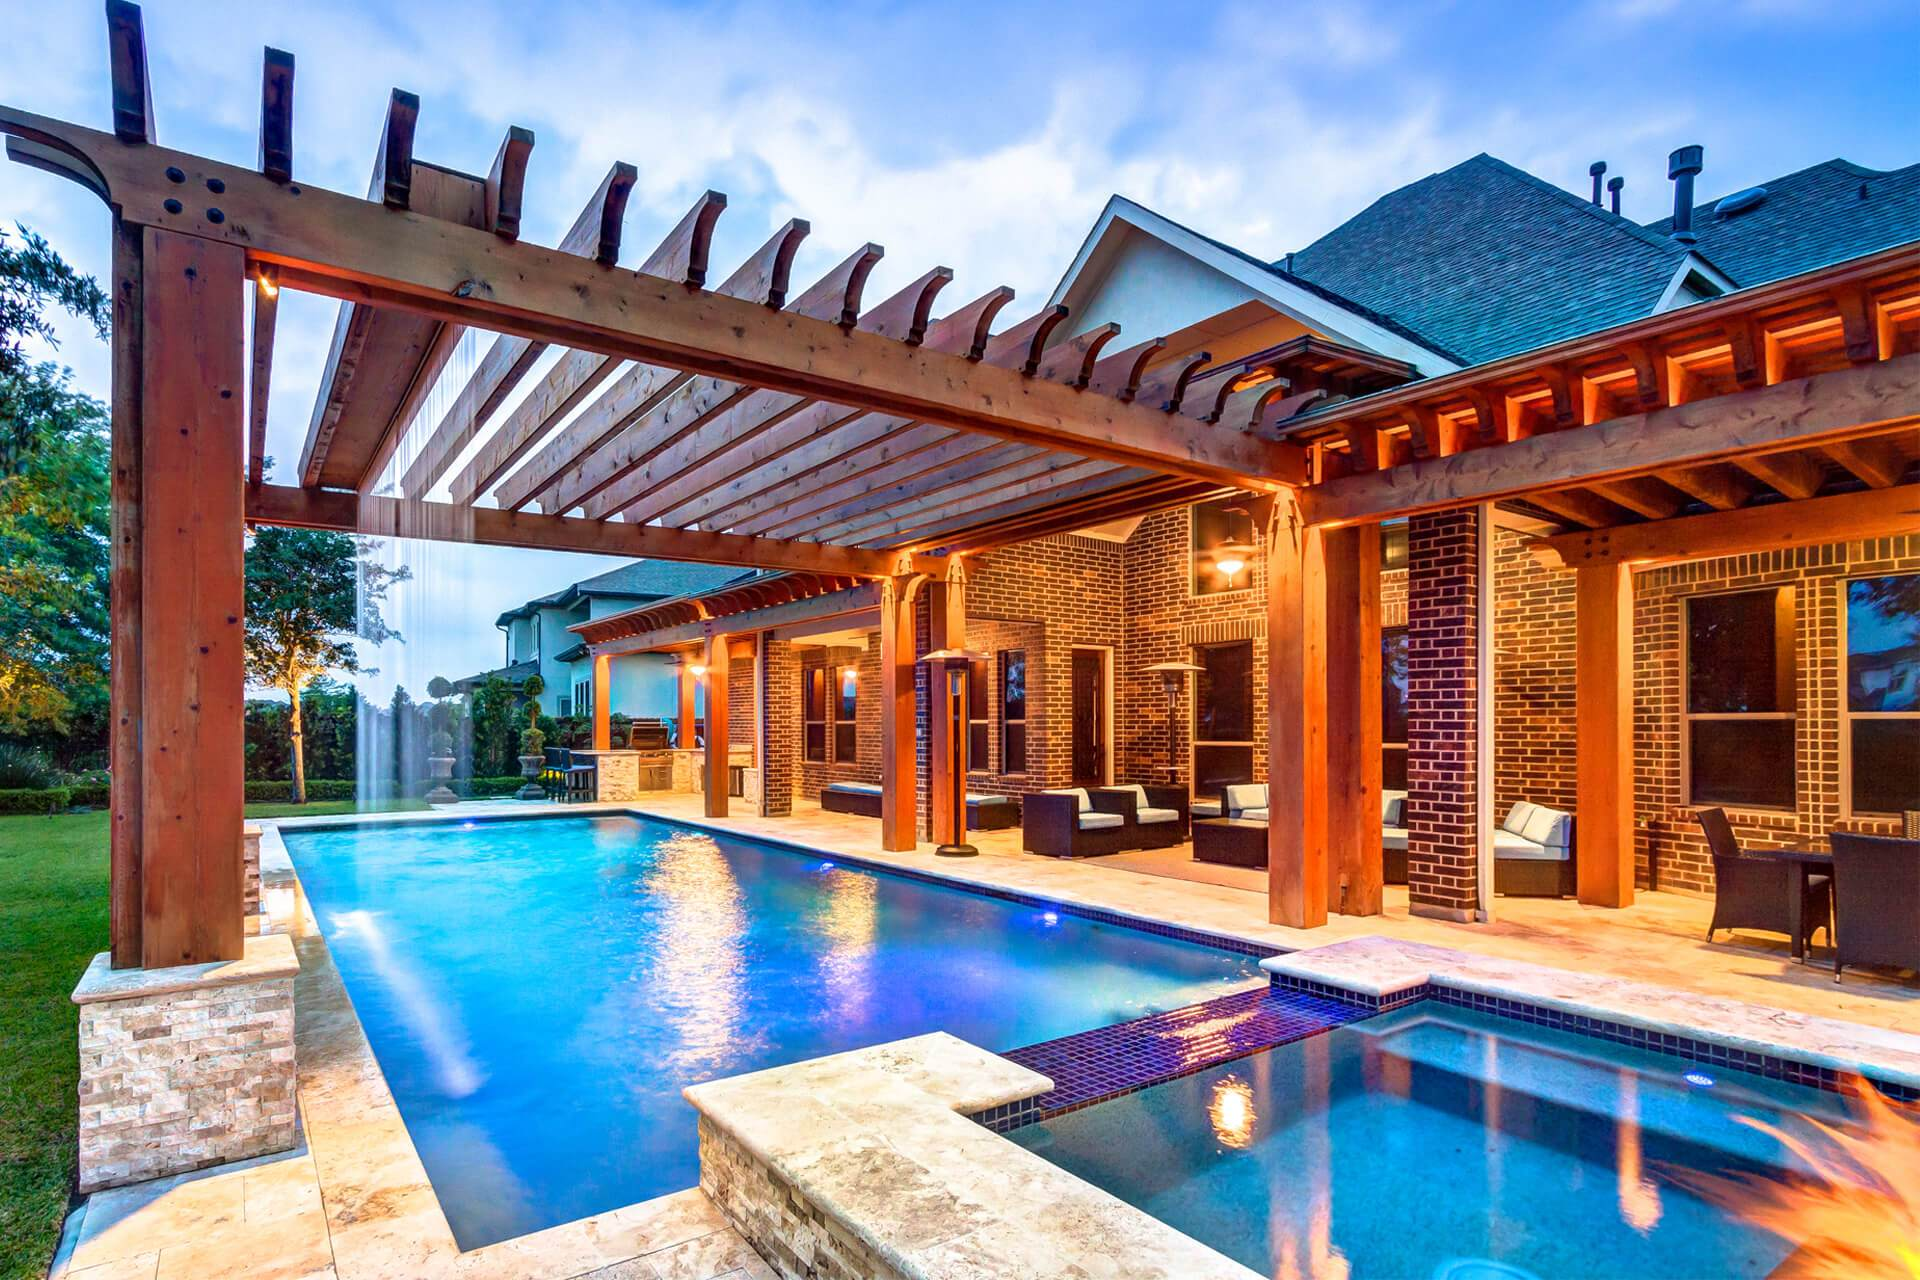 Custom Pergola with Waterfall Accent in Houston Texas by Creekstone Outdoor Living